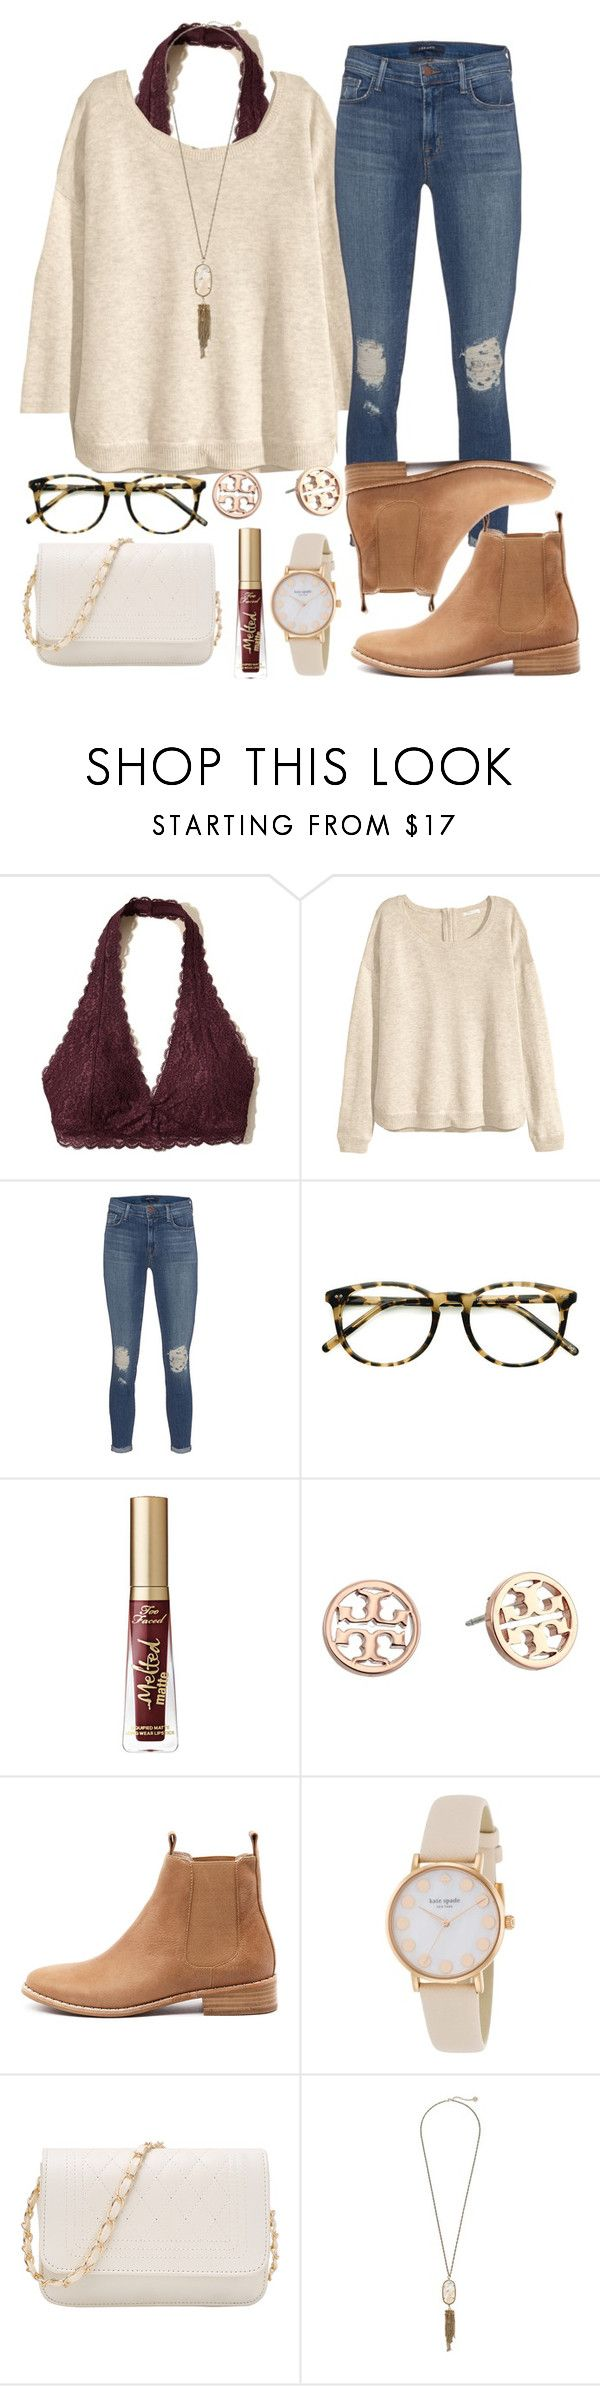 Casual outfit idea  by hey-faith on Polyvore featuring H&M, J Brand, Hollister Co., Mollini, Kate Spade, Tory Burch, Kendra Scott, Ace and Too Faced Cosmetics #fashion #casual #outfit